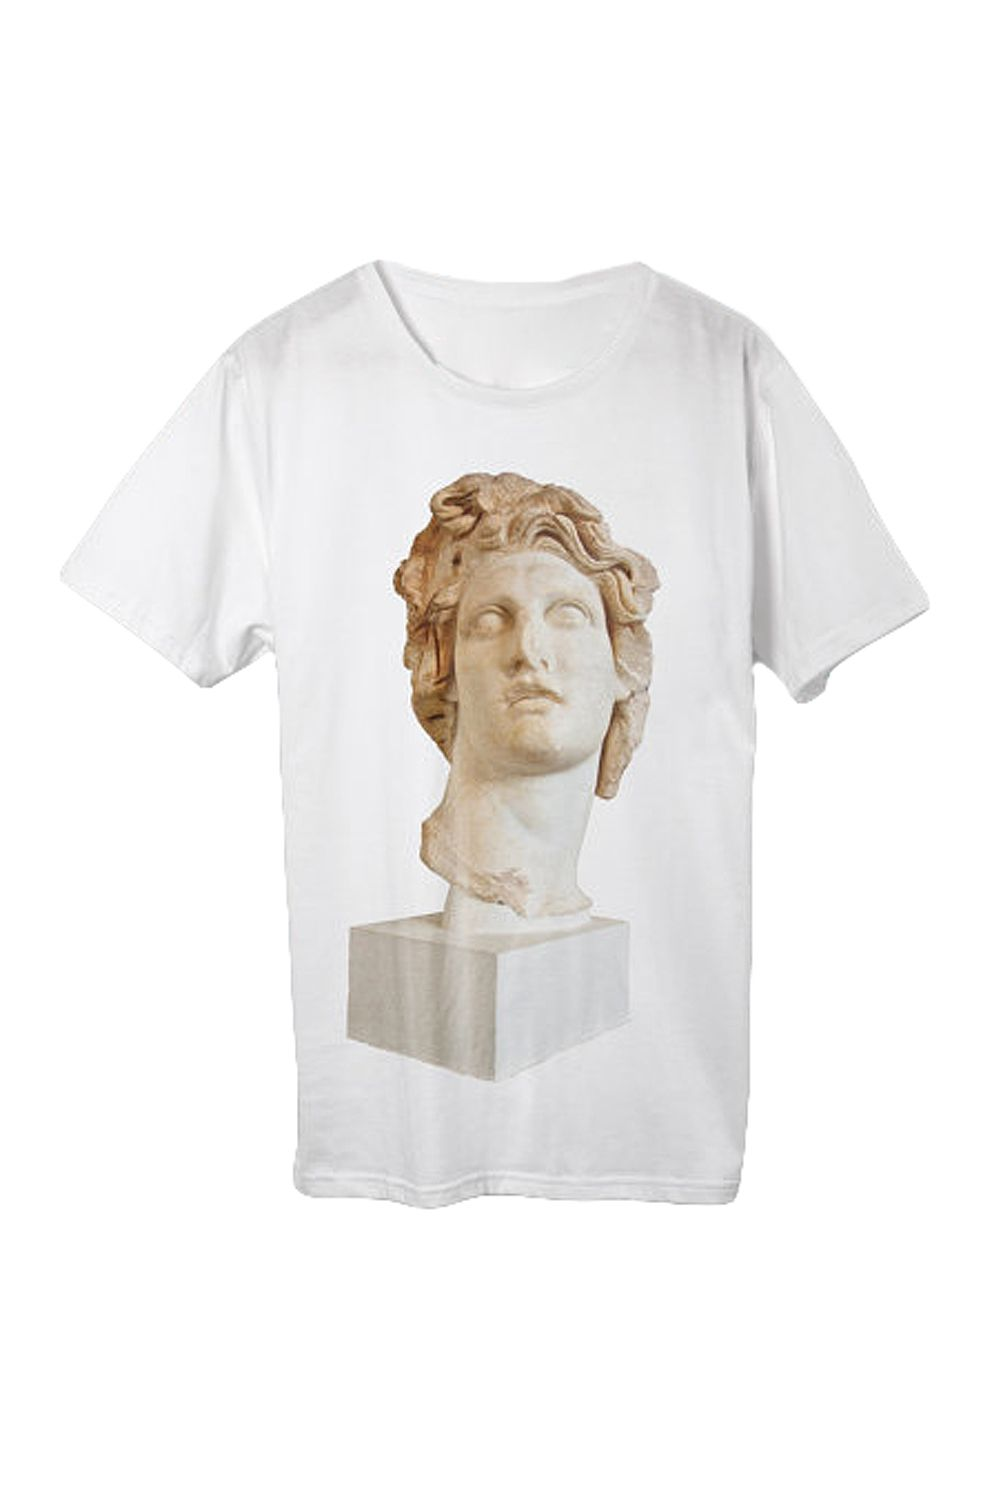 """<p>Why do busts always look like their moms have just asked them to take out the trash?</p><p><em data-redactor-tag=""""em"""" data-verified=""""redactor"""">CapitalFam, $20</em></p><p><strong data-redactor-tag=""""strong"""" data-verified=""""redactor"""">BUY IT:</strong><span class=""""redactor-invisible-space"""" data-verified=""""redactor"""" data-redactor-tag=""""span"""" data-redactor-class=""""redactor-invisible-space""""><strong data-redactor-tag=""""strong"""" data-verified=""""redactor""""><a href=""""https://www.etsy.com/listing/504724881/helios-greek-bust-shirt-a-e-s-t-h-e-t-i"""" target=""""_blank"""" data-tracking-id=""""recirc-text-link"""">etsy.com</a>.</strong></span></p>"""